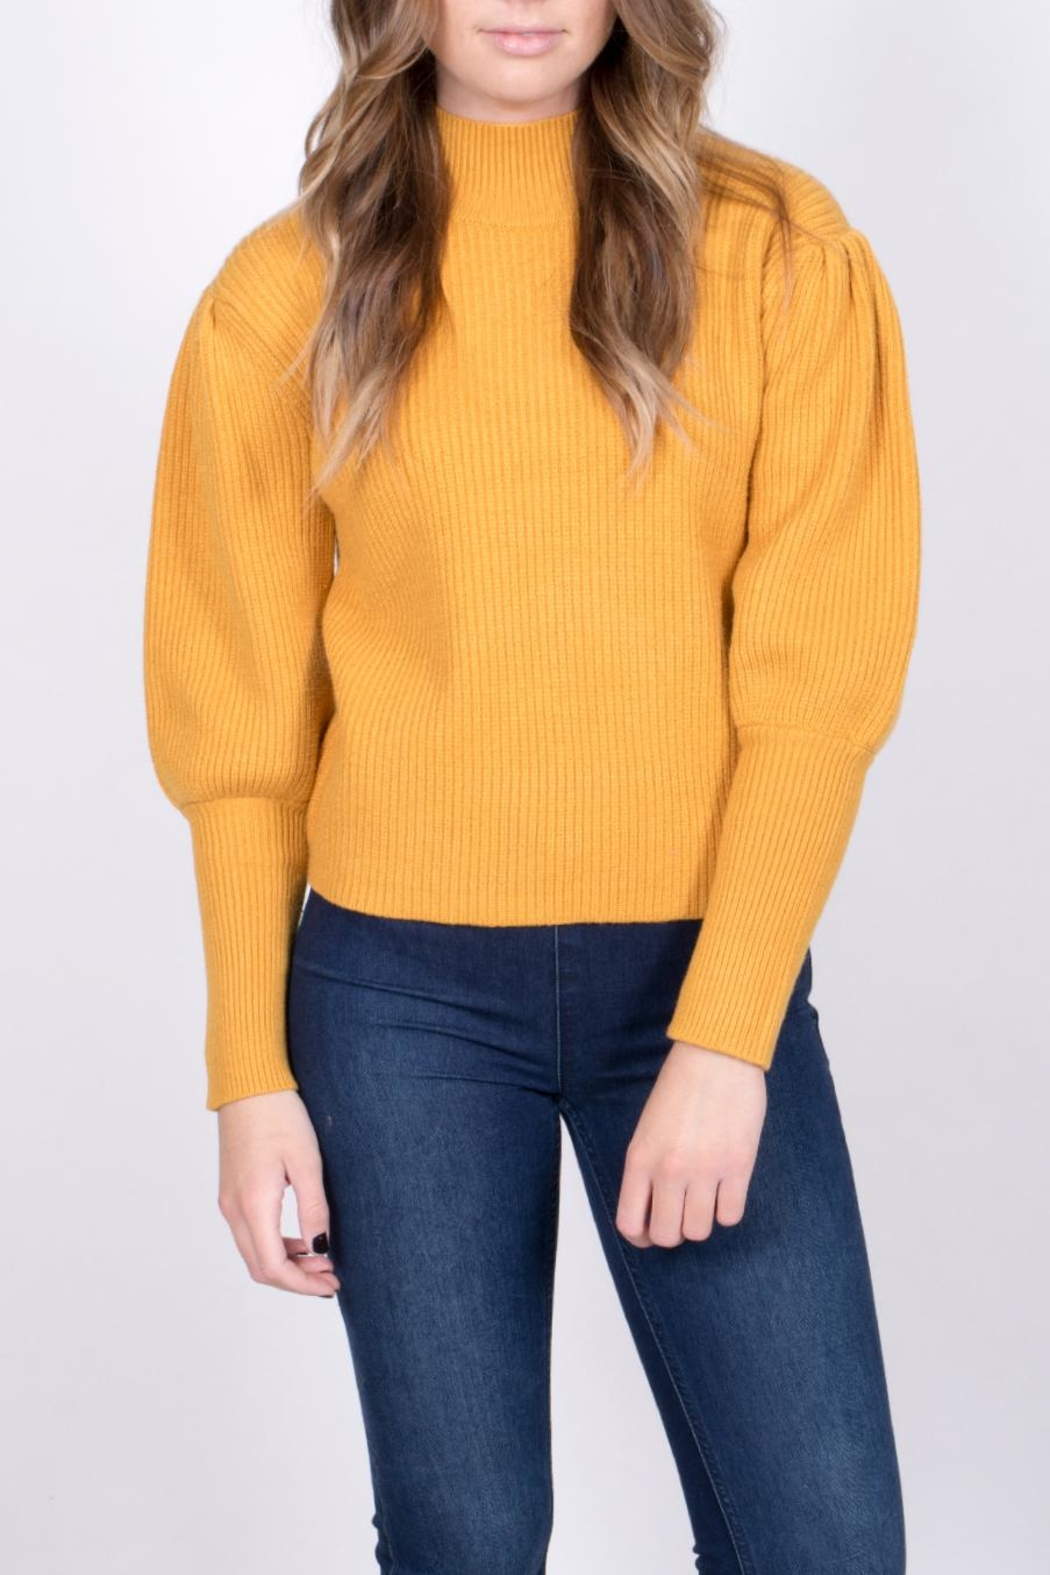 Do & Be Mustard Balloon Sleeve Sweater - Back Cropped Image